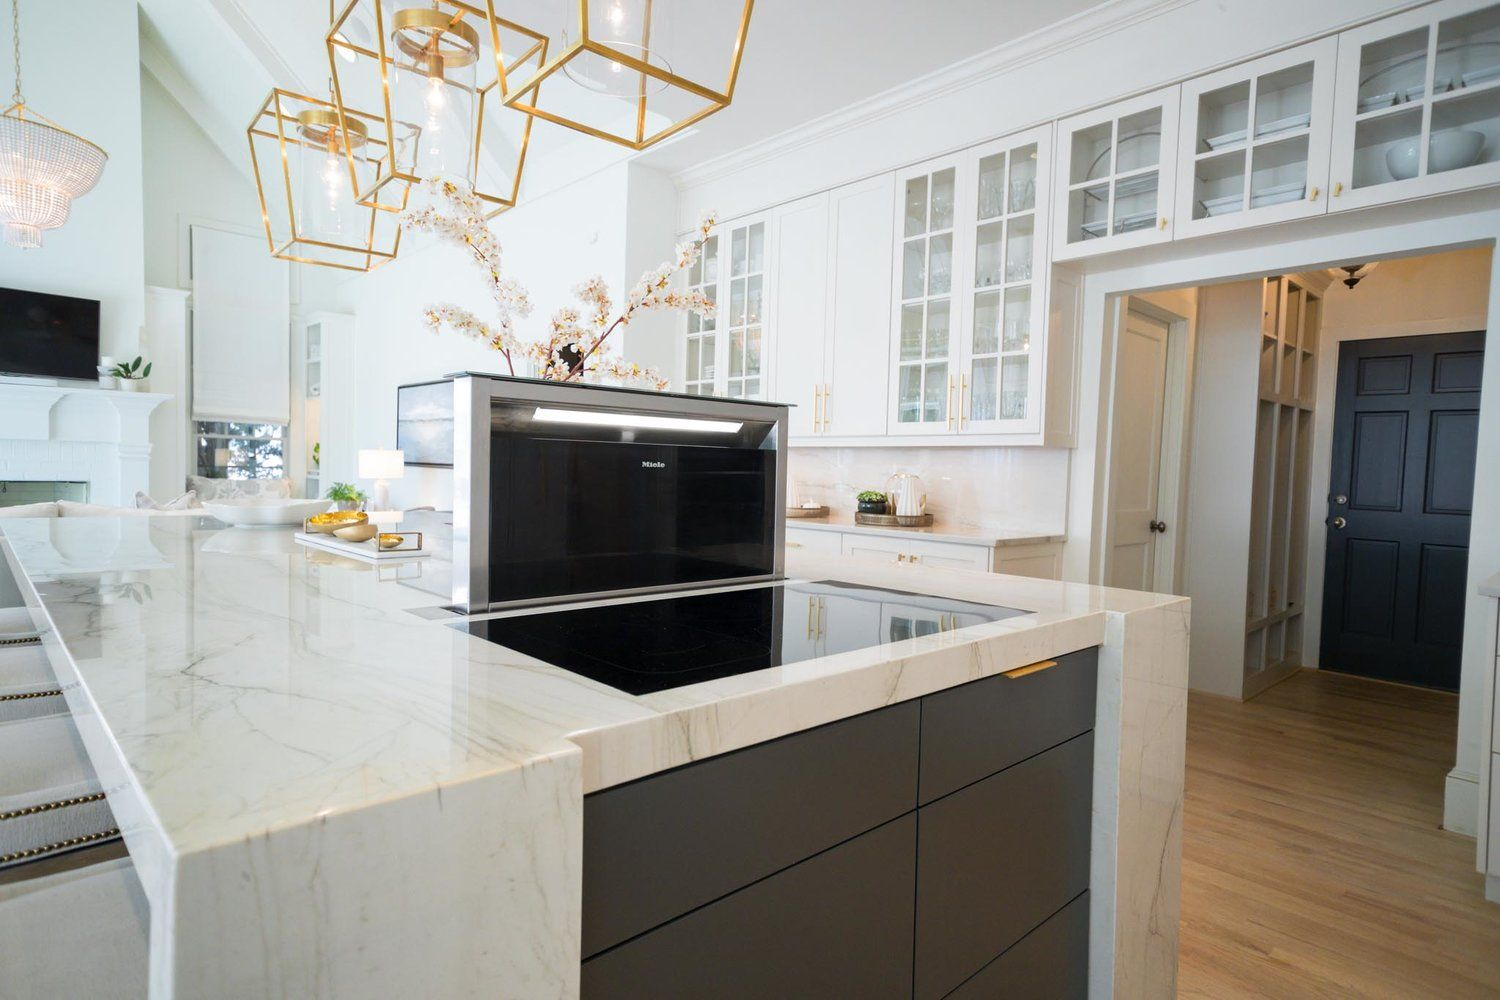 Kitchen Island Countertop Is A 2 Inches Thick Slab Of Carrera